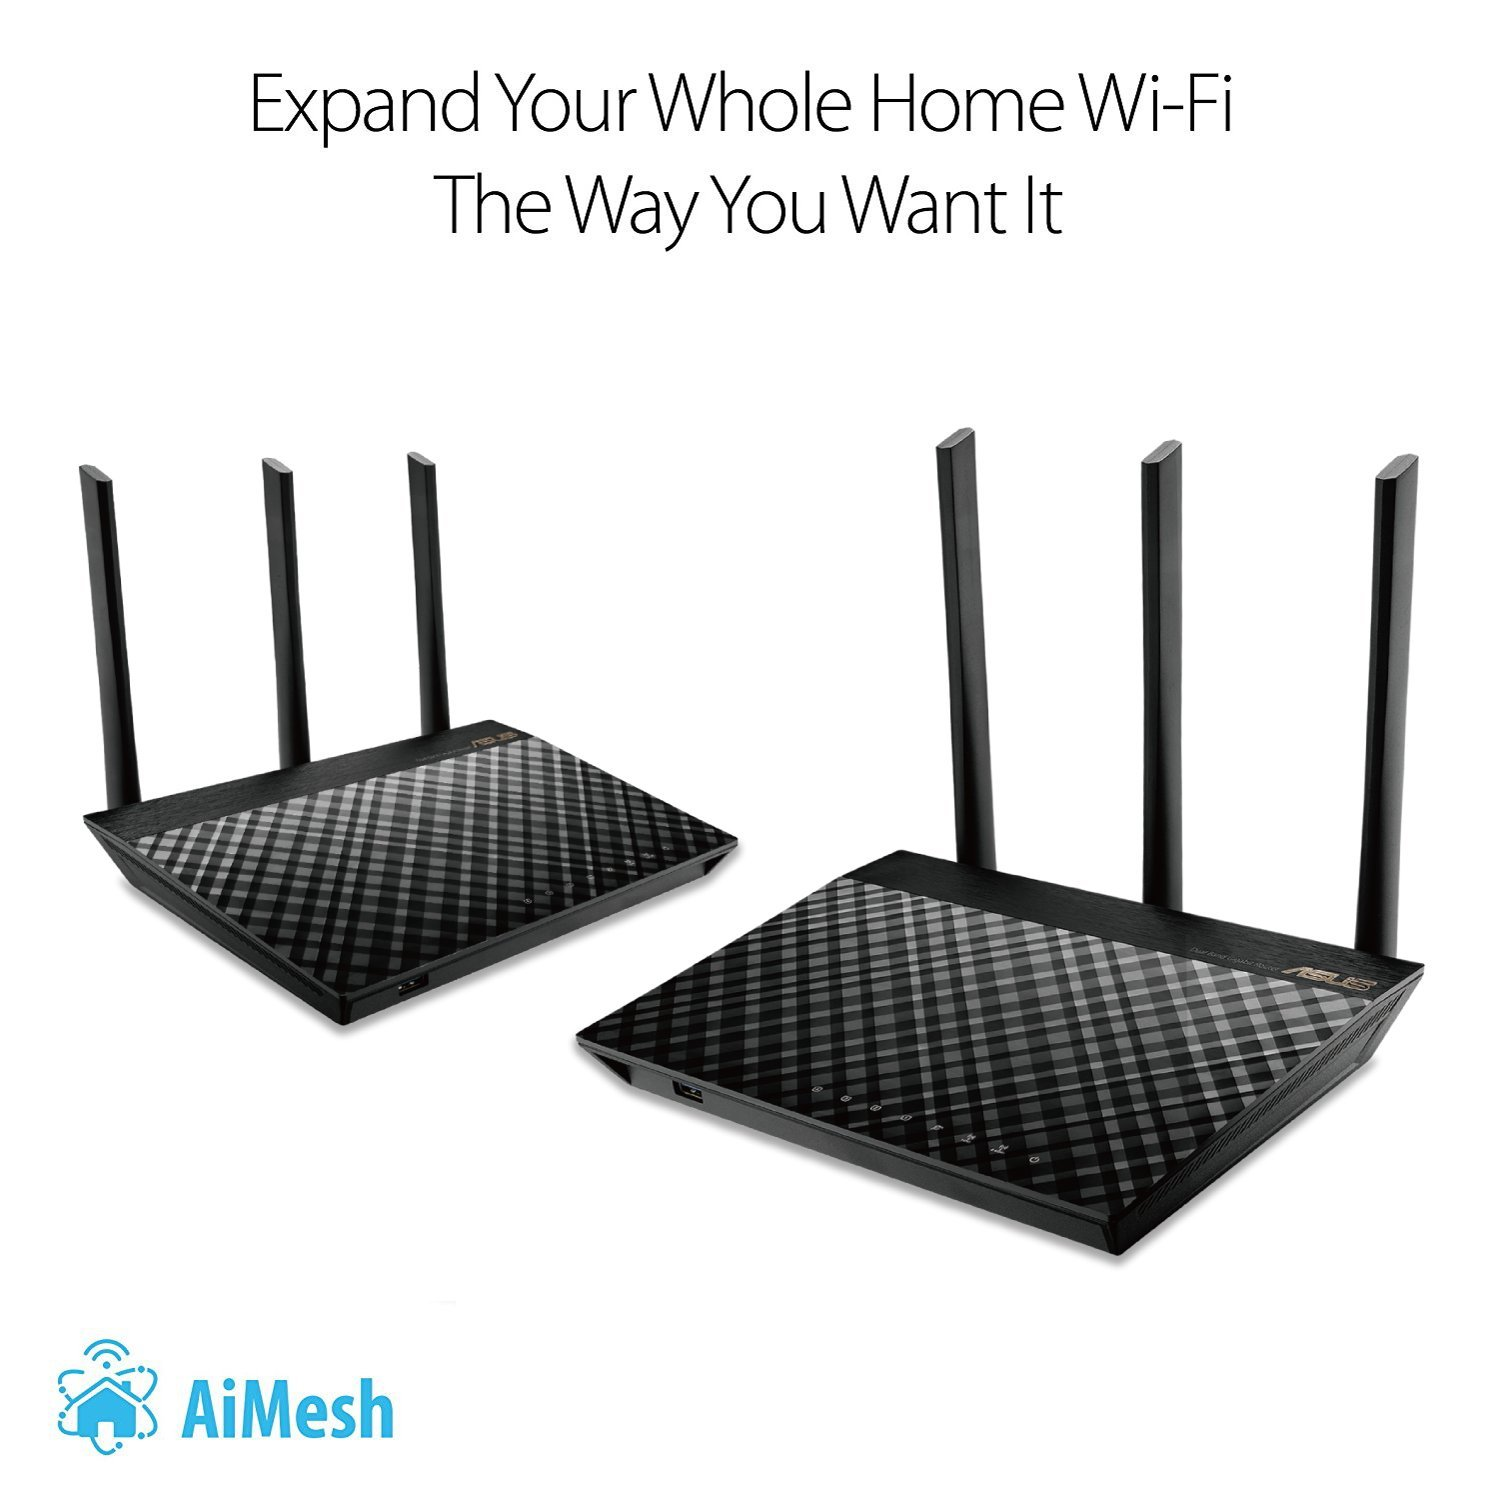 ASUS AC1900 Dual Band Whole Home Mesh Wi-Fi System for